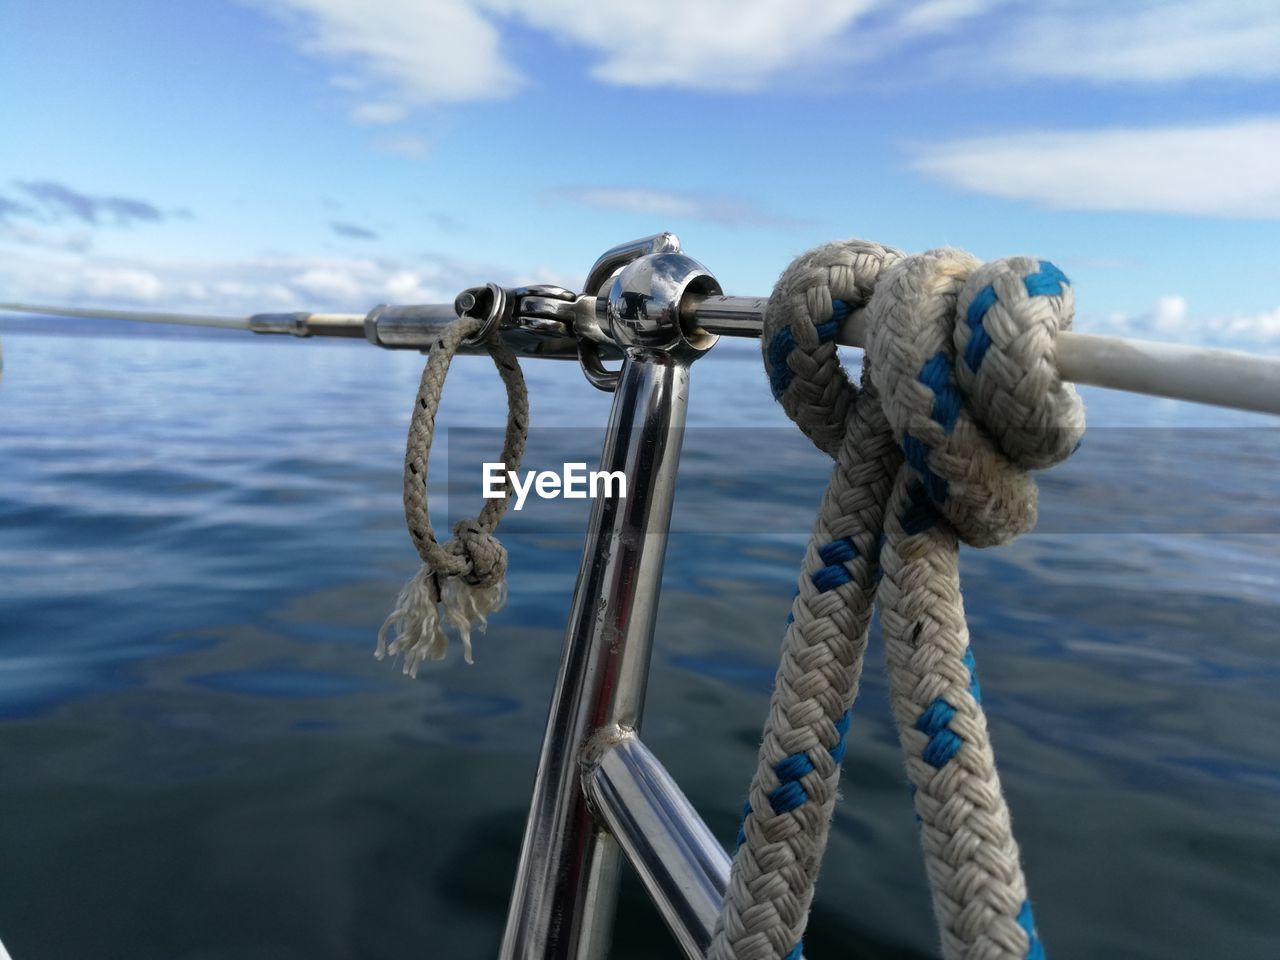 water, rope, tied up, strength, nautical vessel, sea, close-up, connection, transportation, metal, tied knot, mode of transportation, no people, nature, day, focus on foreground, sky, safety, outdoors, steel, alloy, nautical equipment